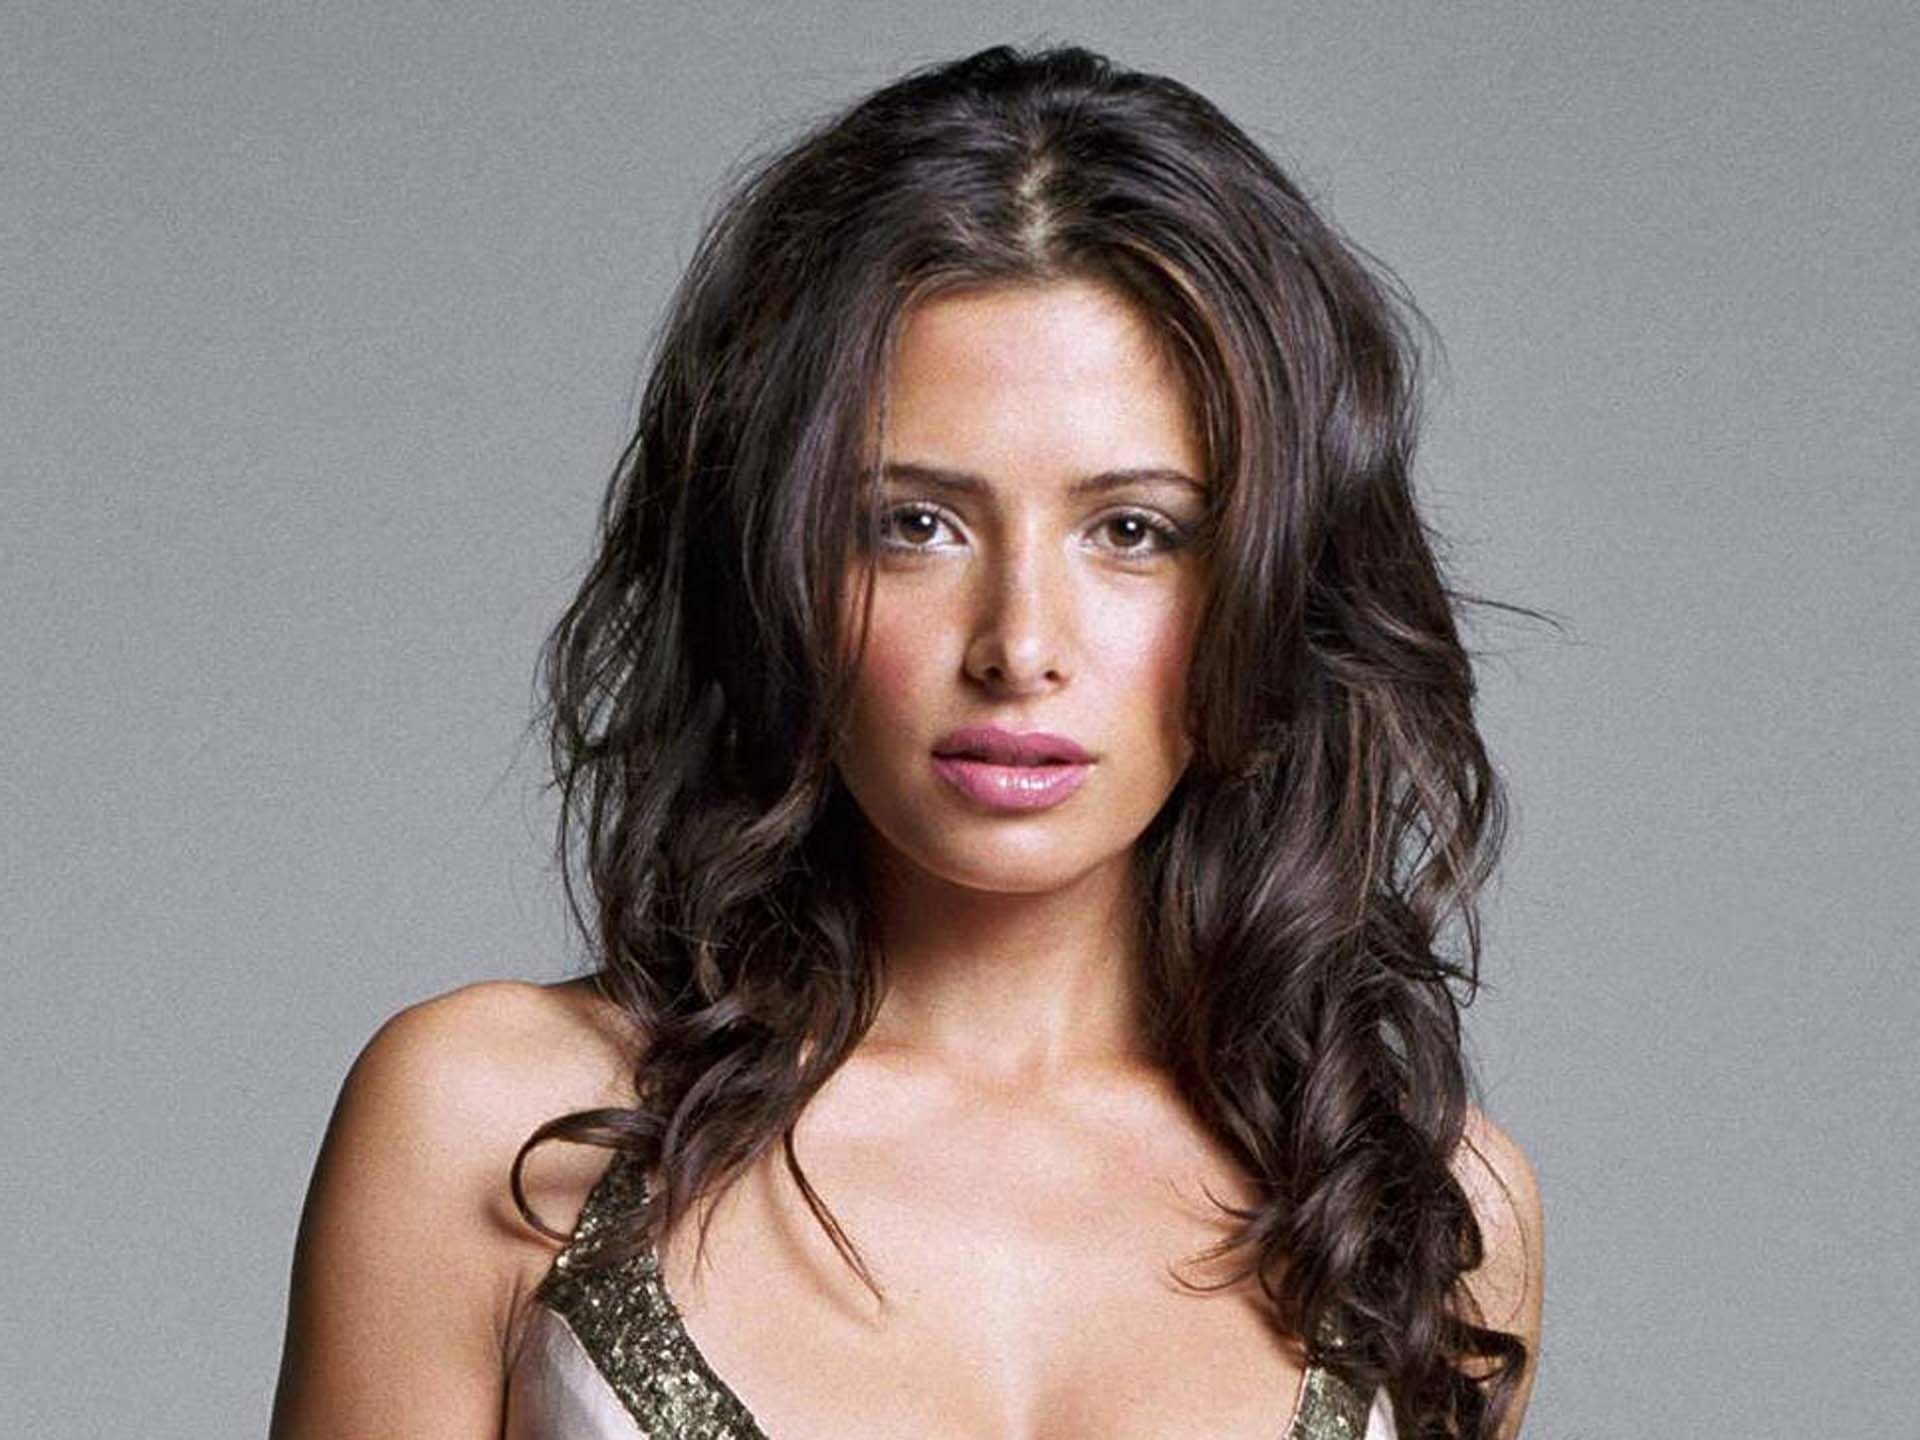 Sarah Shahi Wallpapers High Resolution And Quality Download-4766